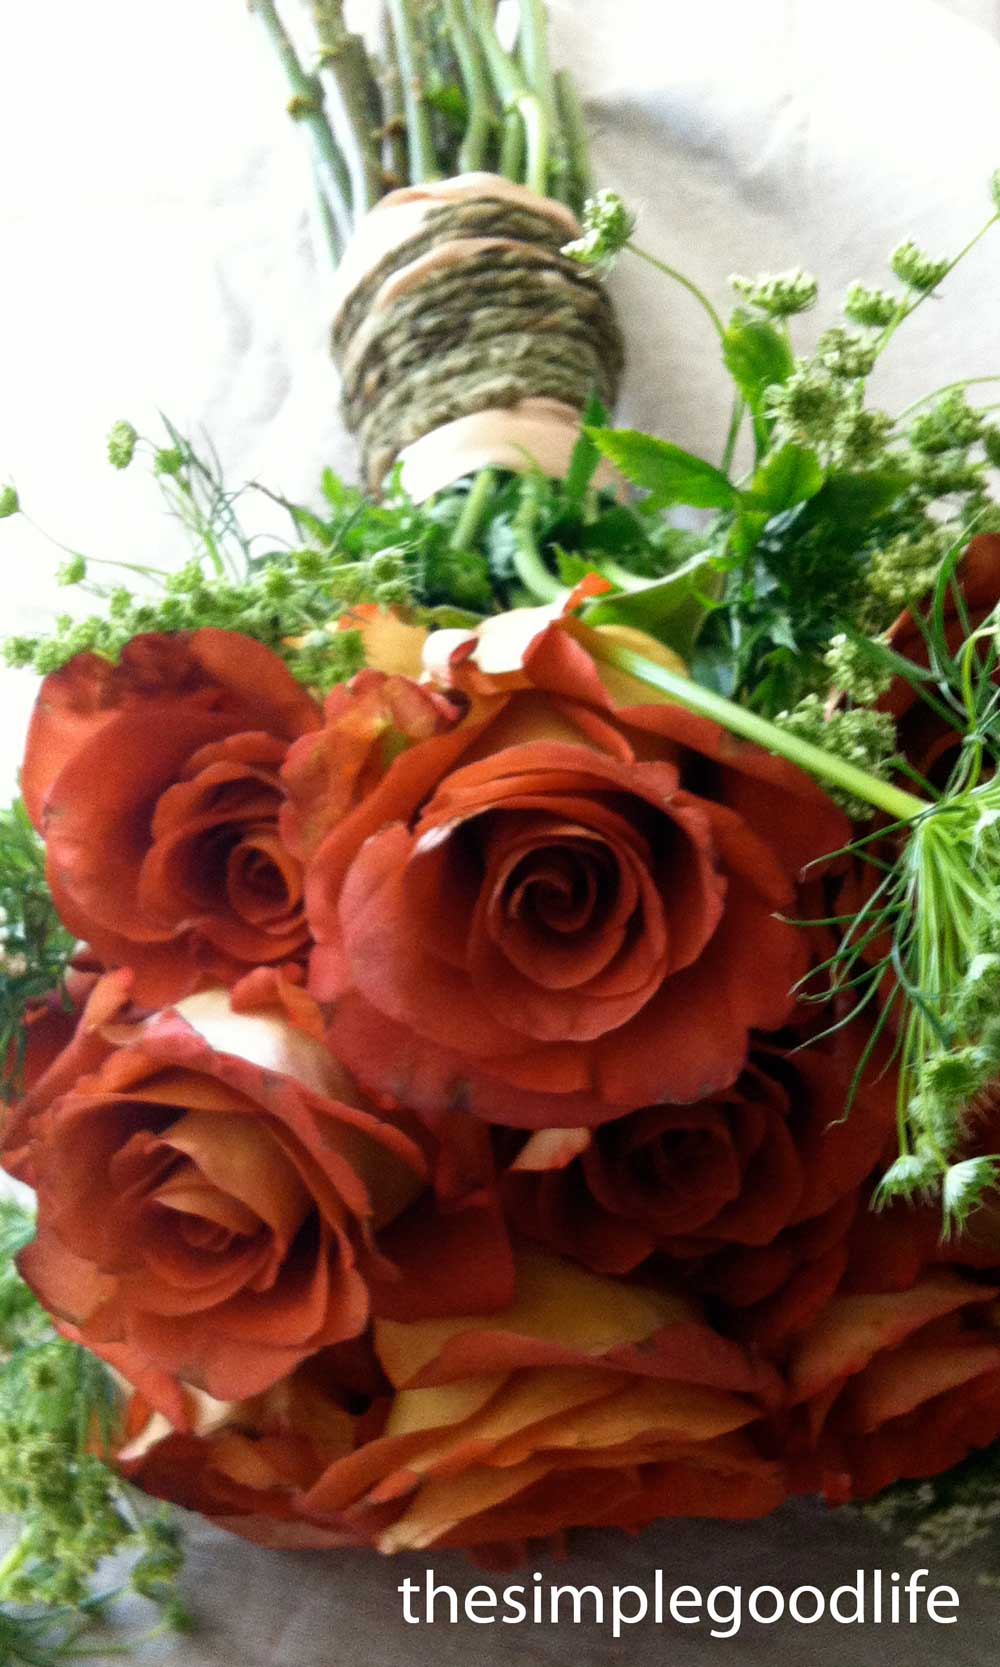 Rose And Rope Wedding Bouquet And Table Arrangement Idea